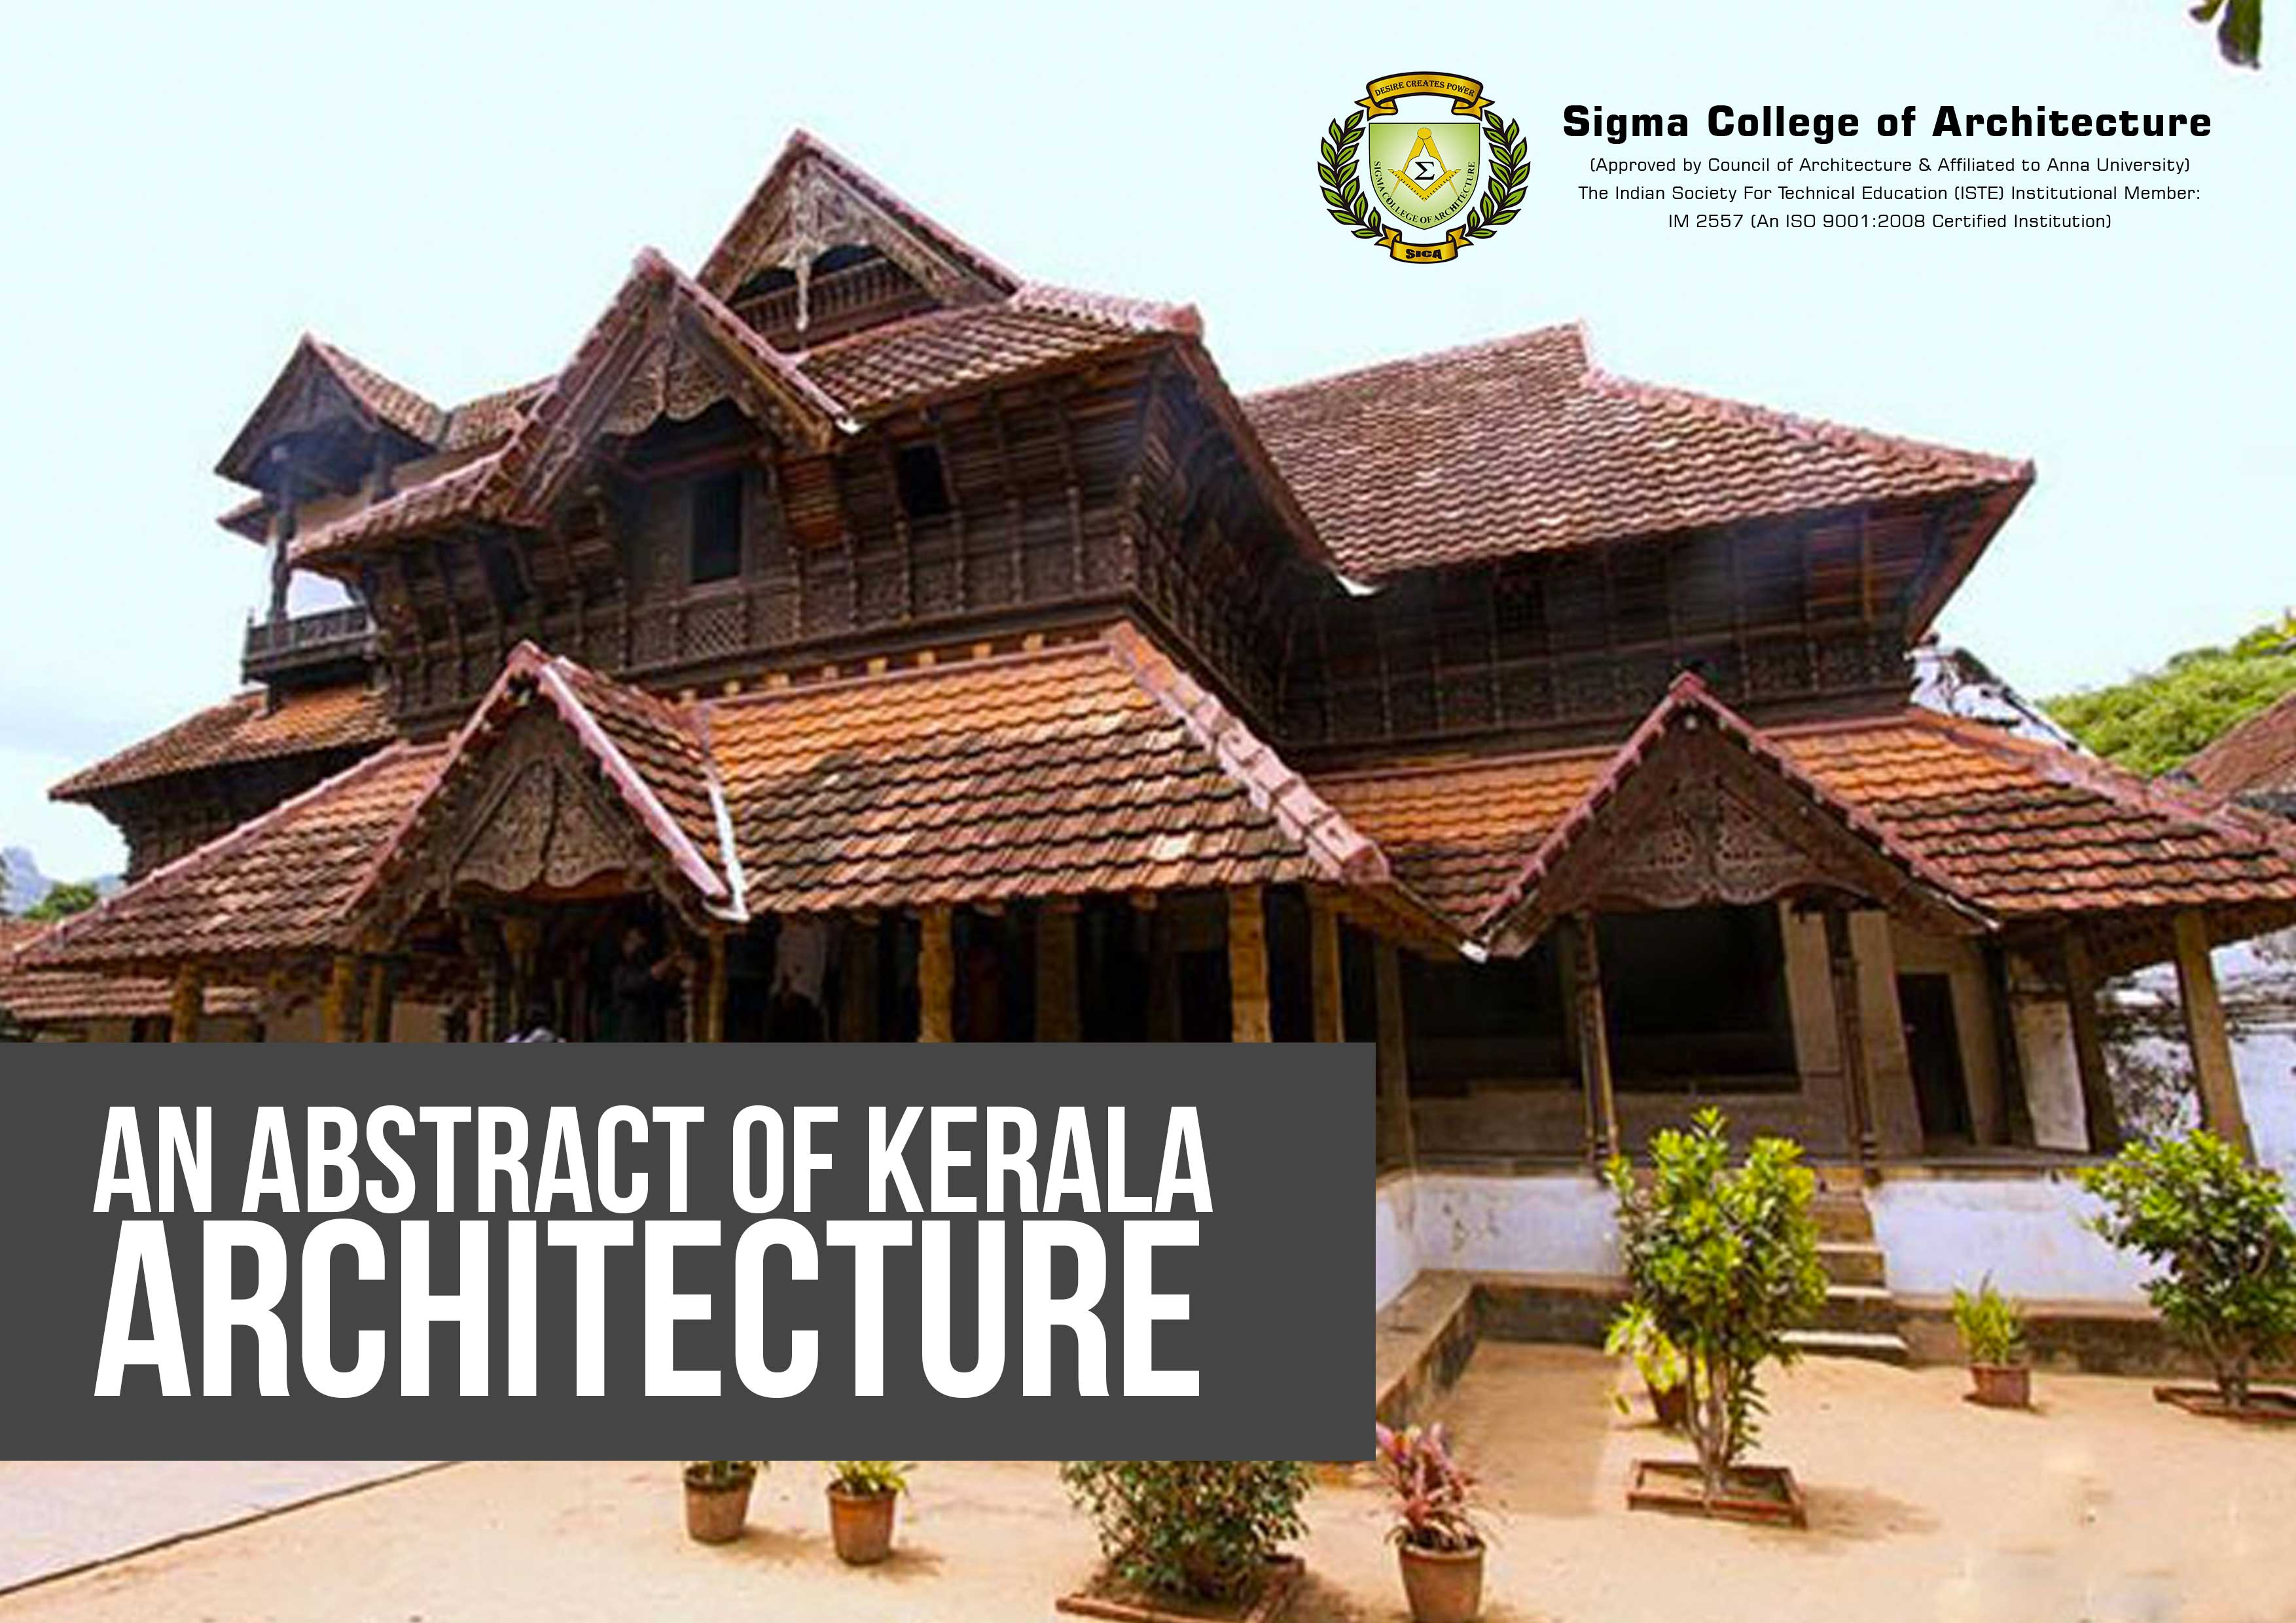 An Abstract of Kerala Architecture